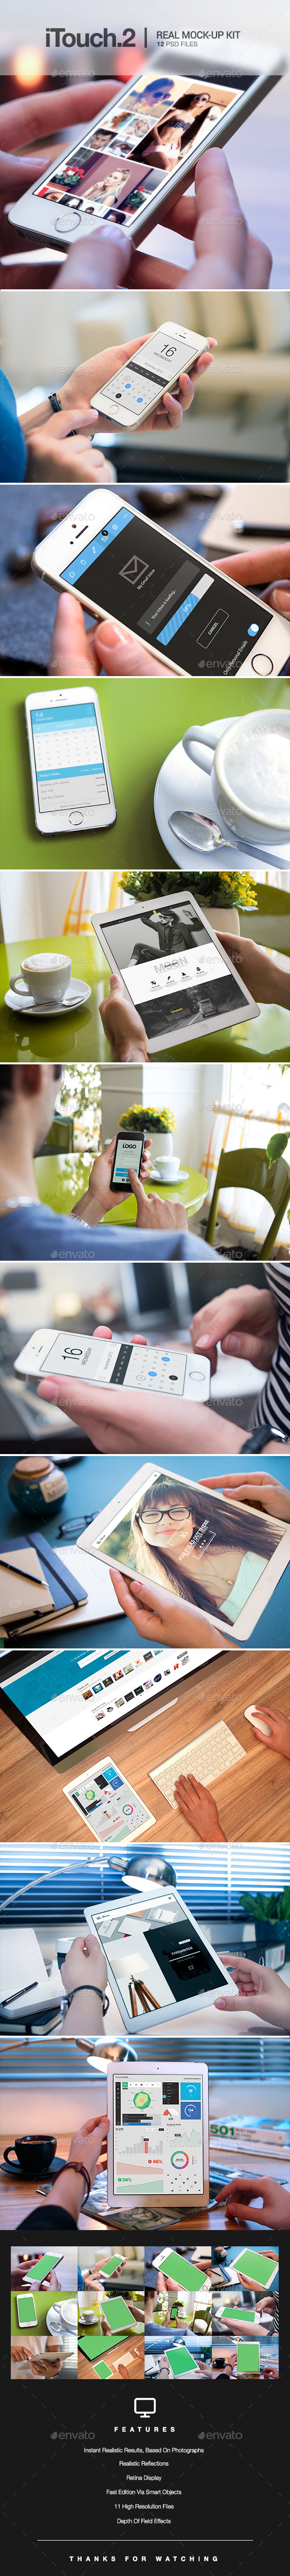 GraphicRiver iTouch 2 12 Photorealistic MockUp 9609098